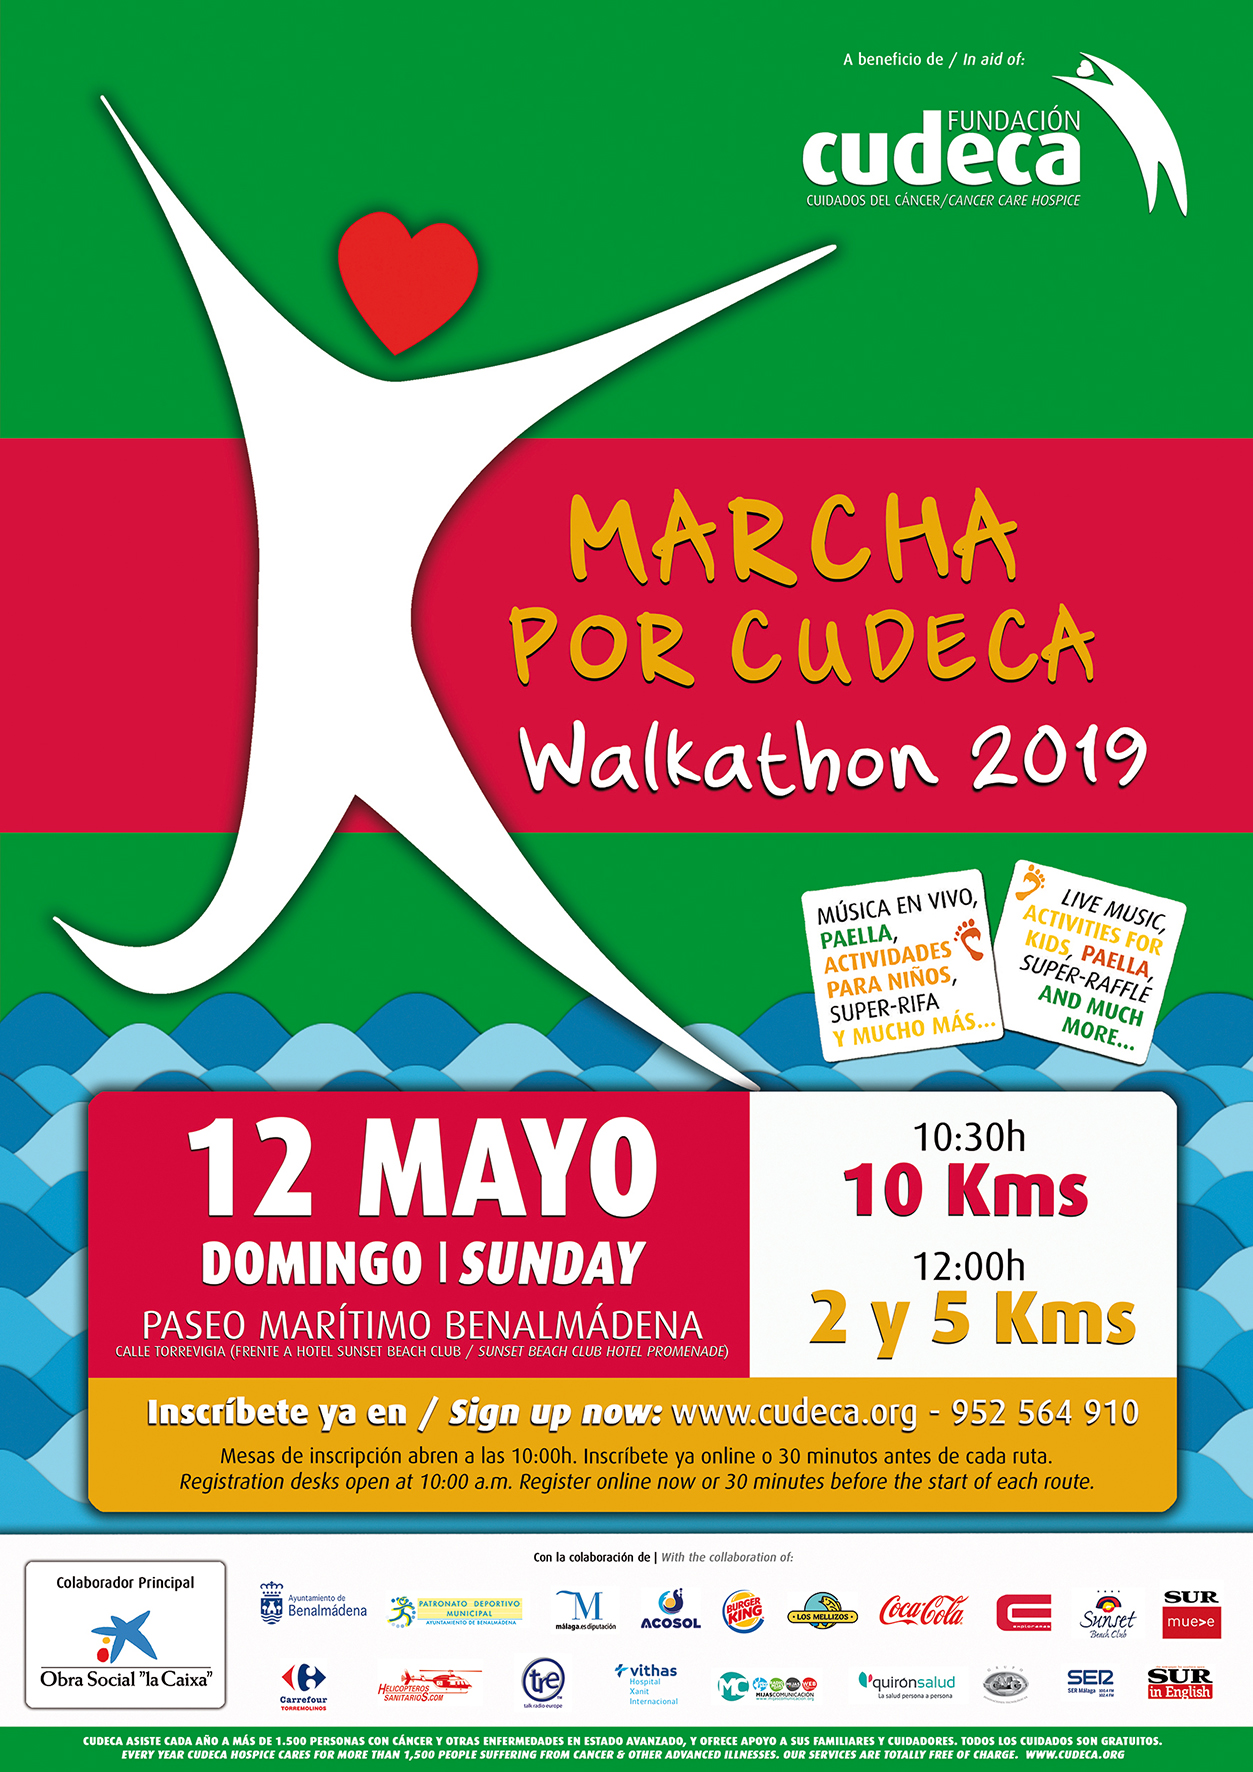 Walkathon 2019!